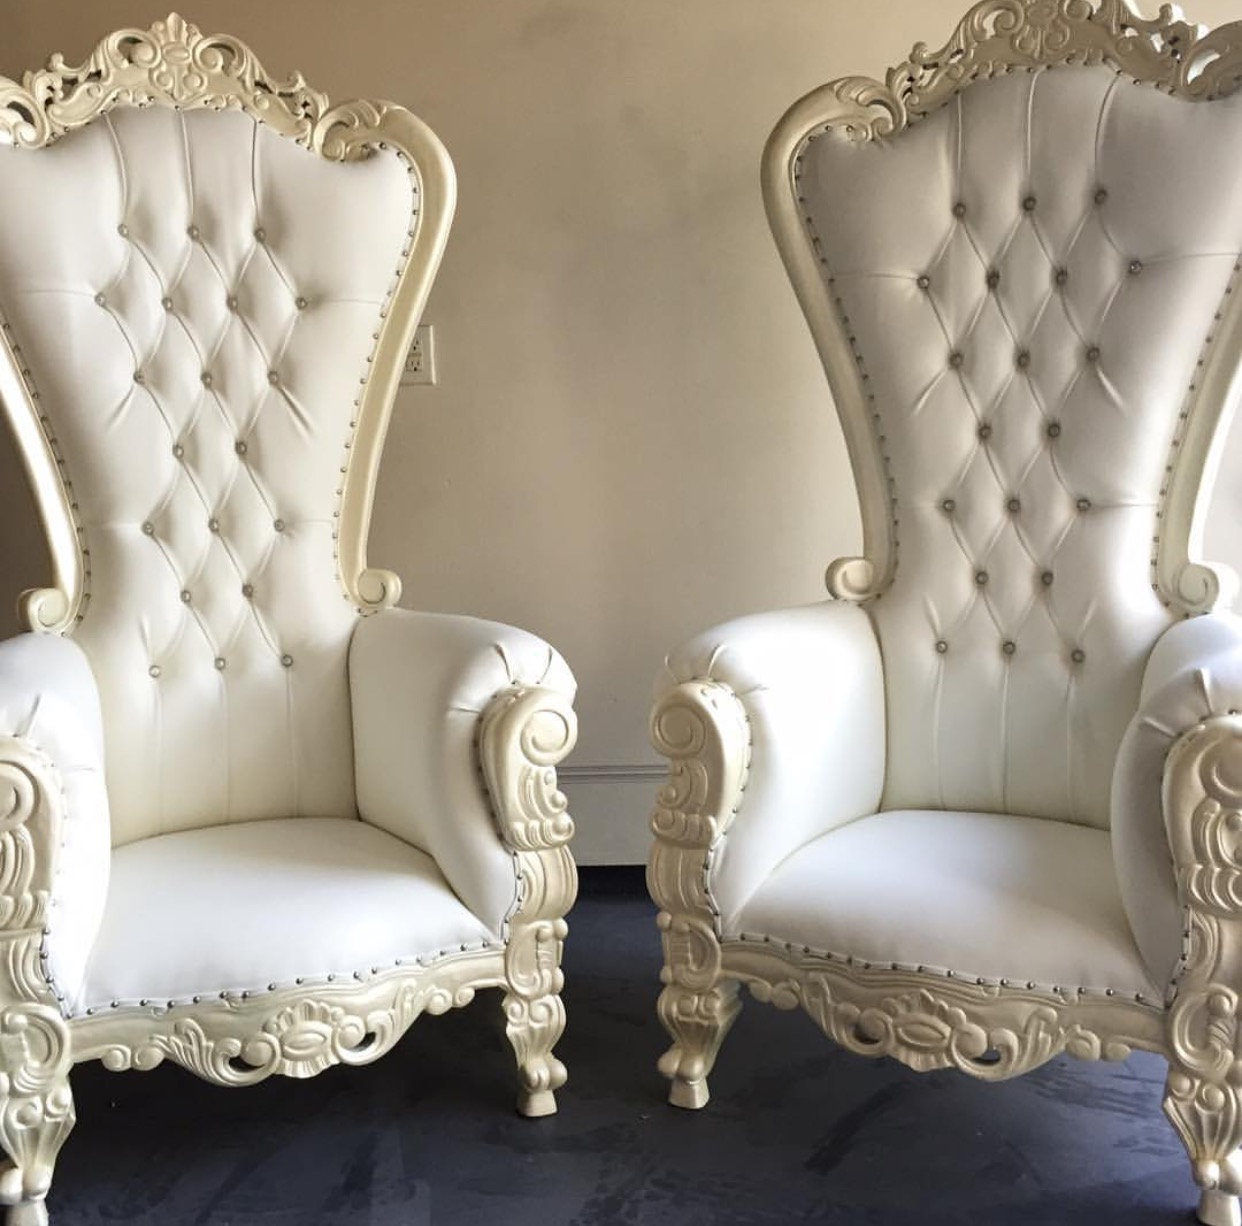 Wedding Chair Rentals Nj Ny Throne Chair Rentals New Jersey And New York 39s